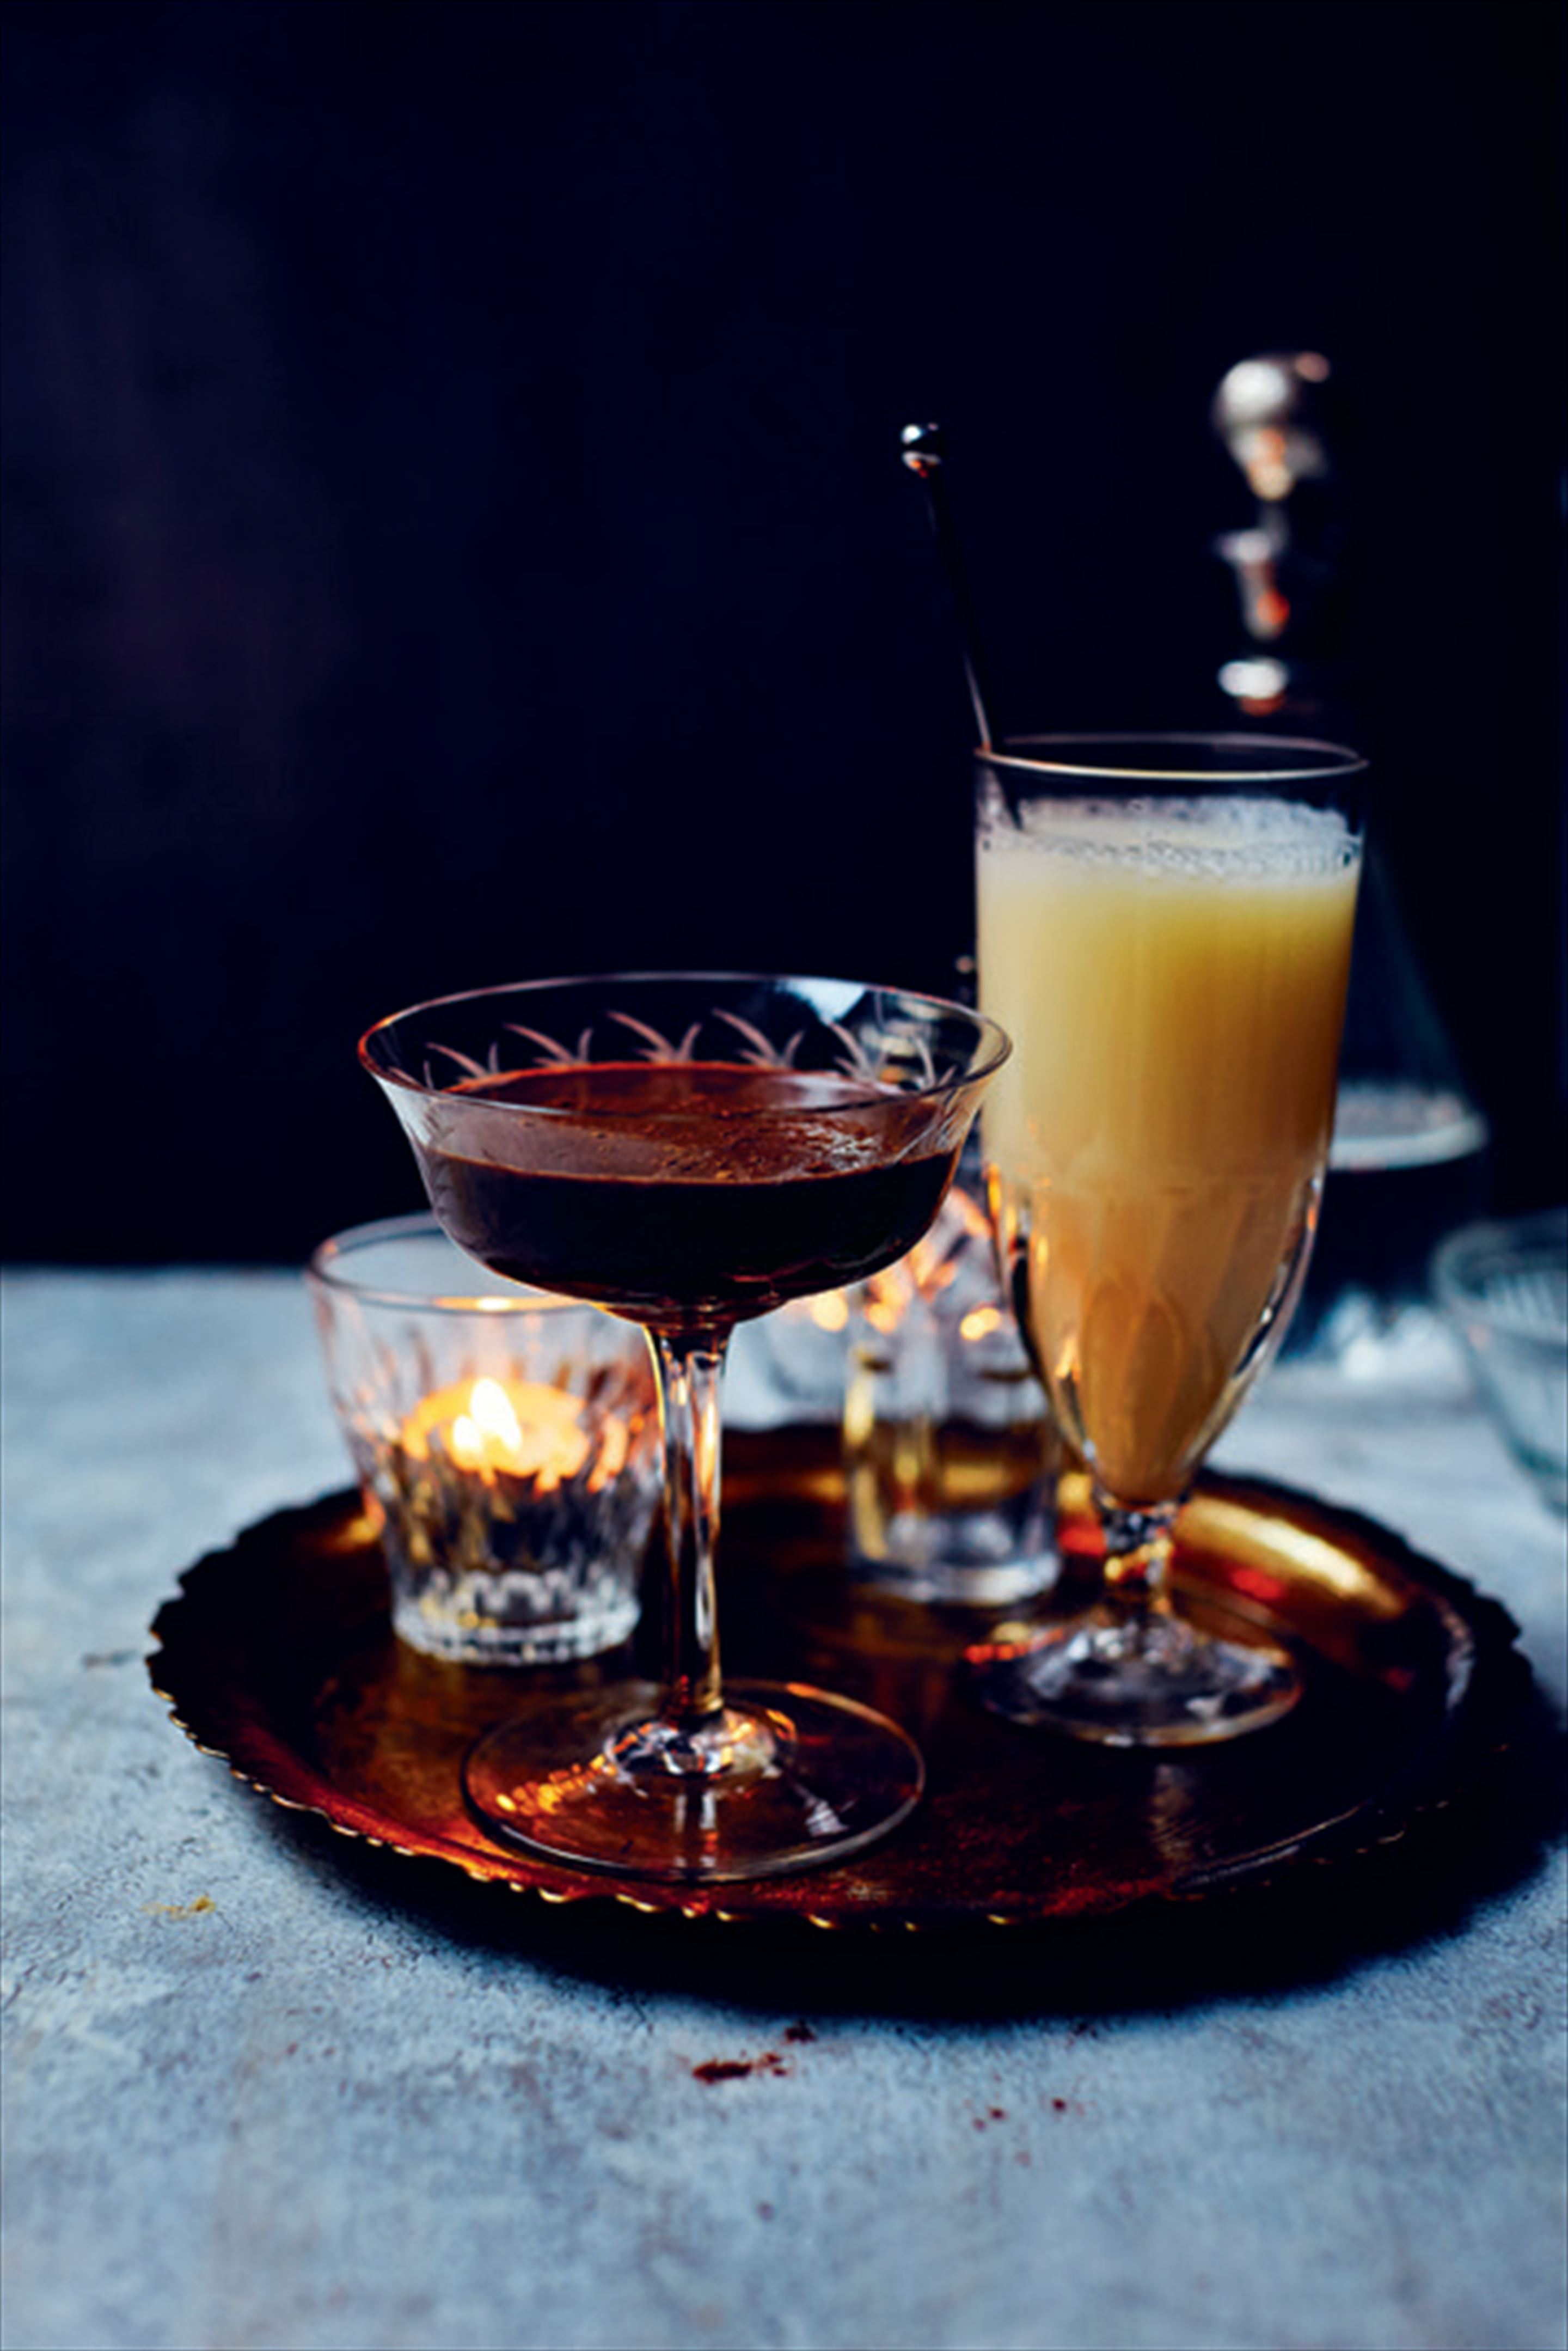 Spiced chocolate martini